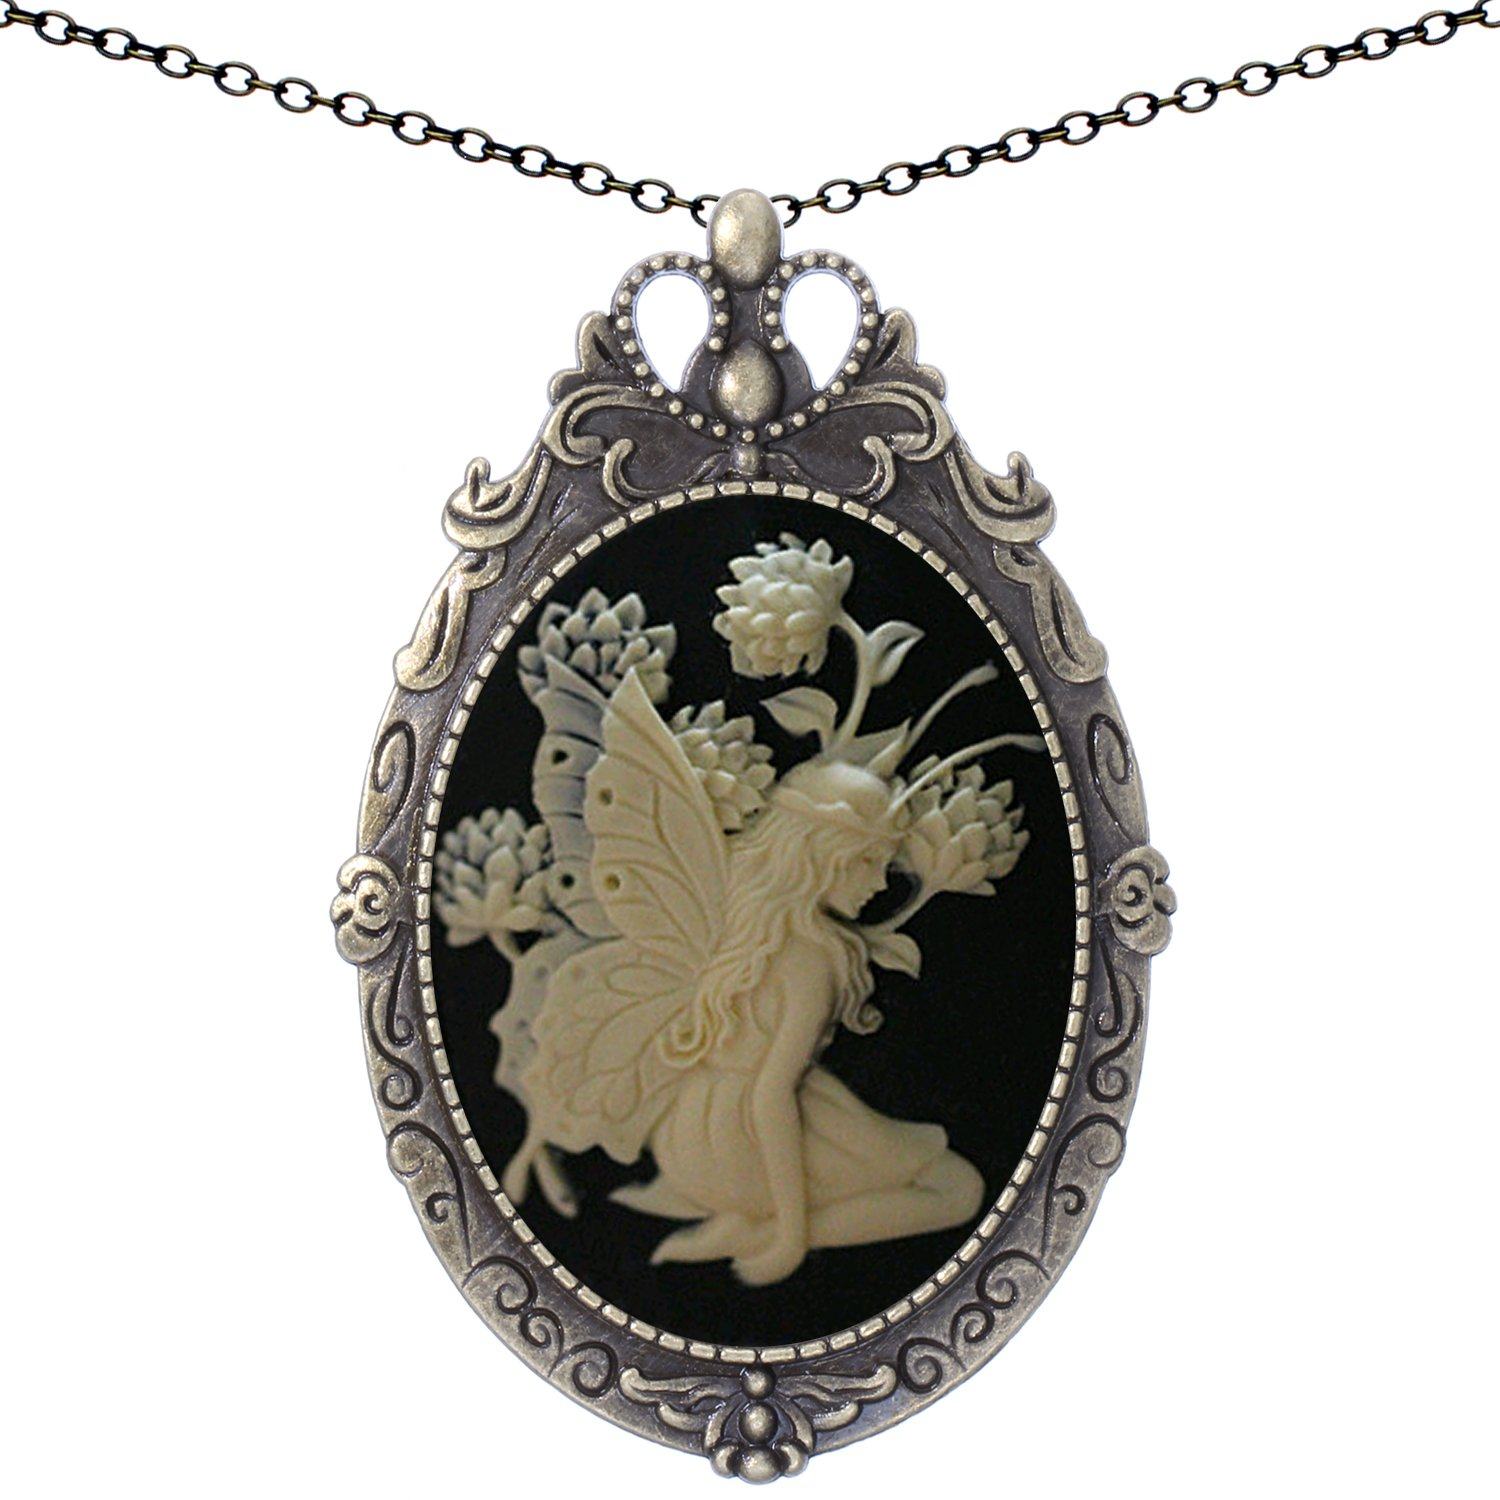 Yspace Lotus Angel Fairy Brooch Antique Brass Shield Shape Pendant Necklace Two Way Jewelry 20'' Chain Pouch Gift